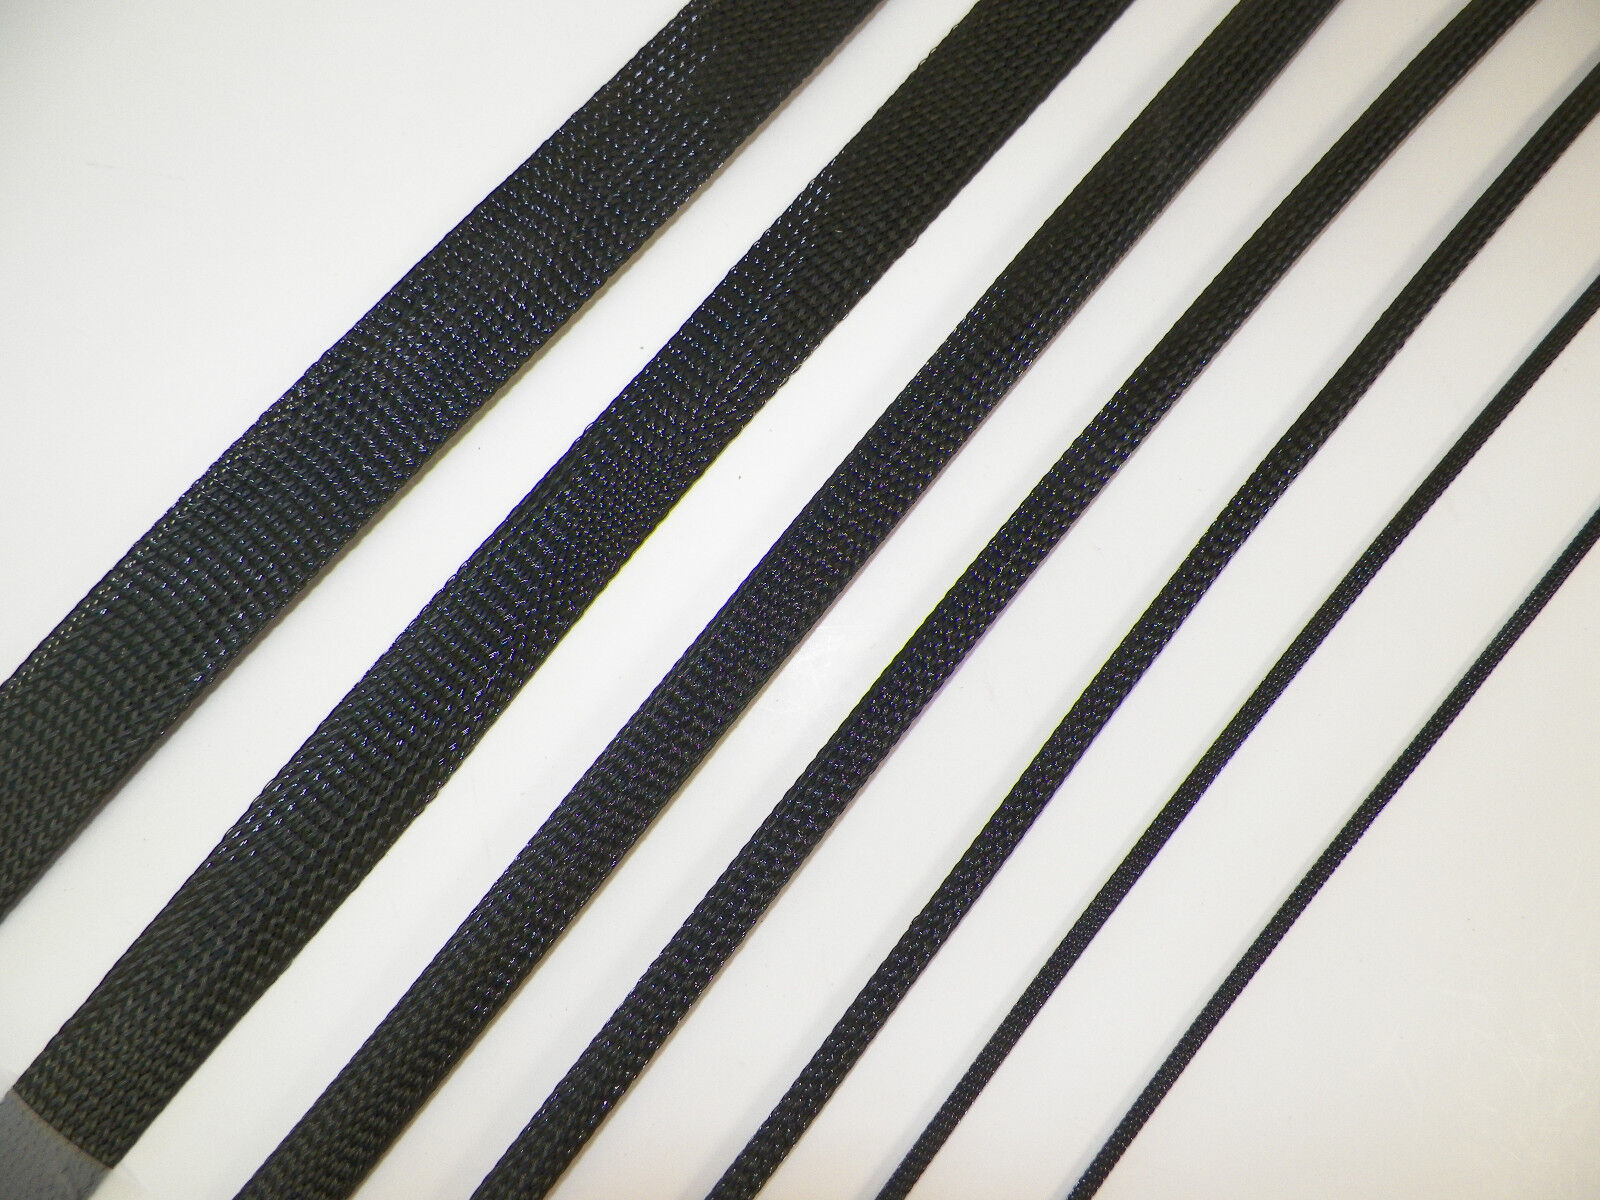 Black Braided Expandable Flex Sleeve Wiring Harness Loom Flexable 1 Of 6free Shipping Wire Cover